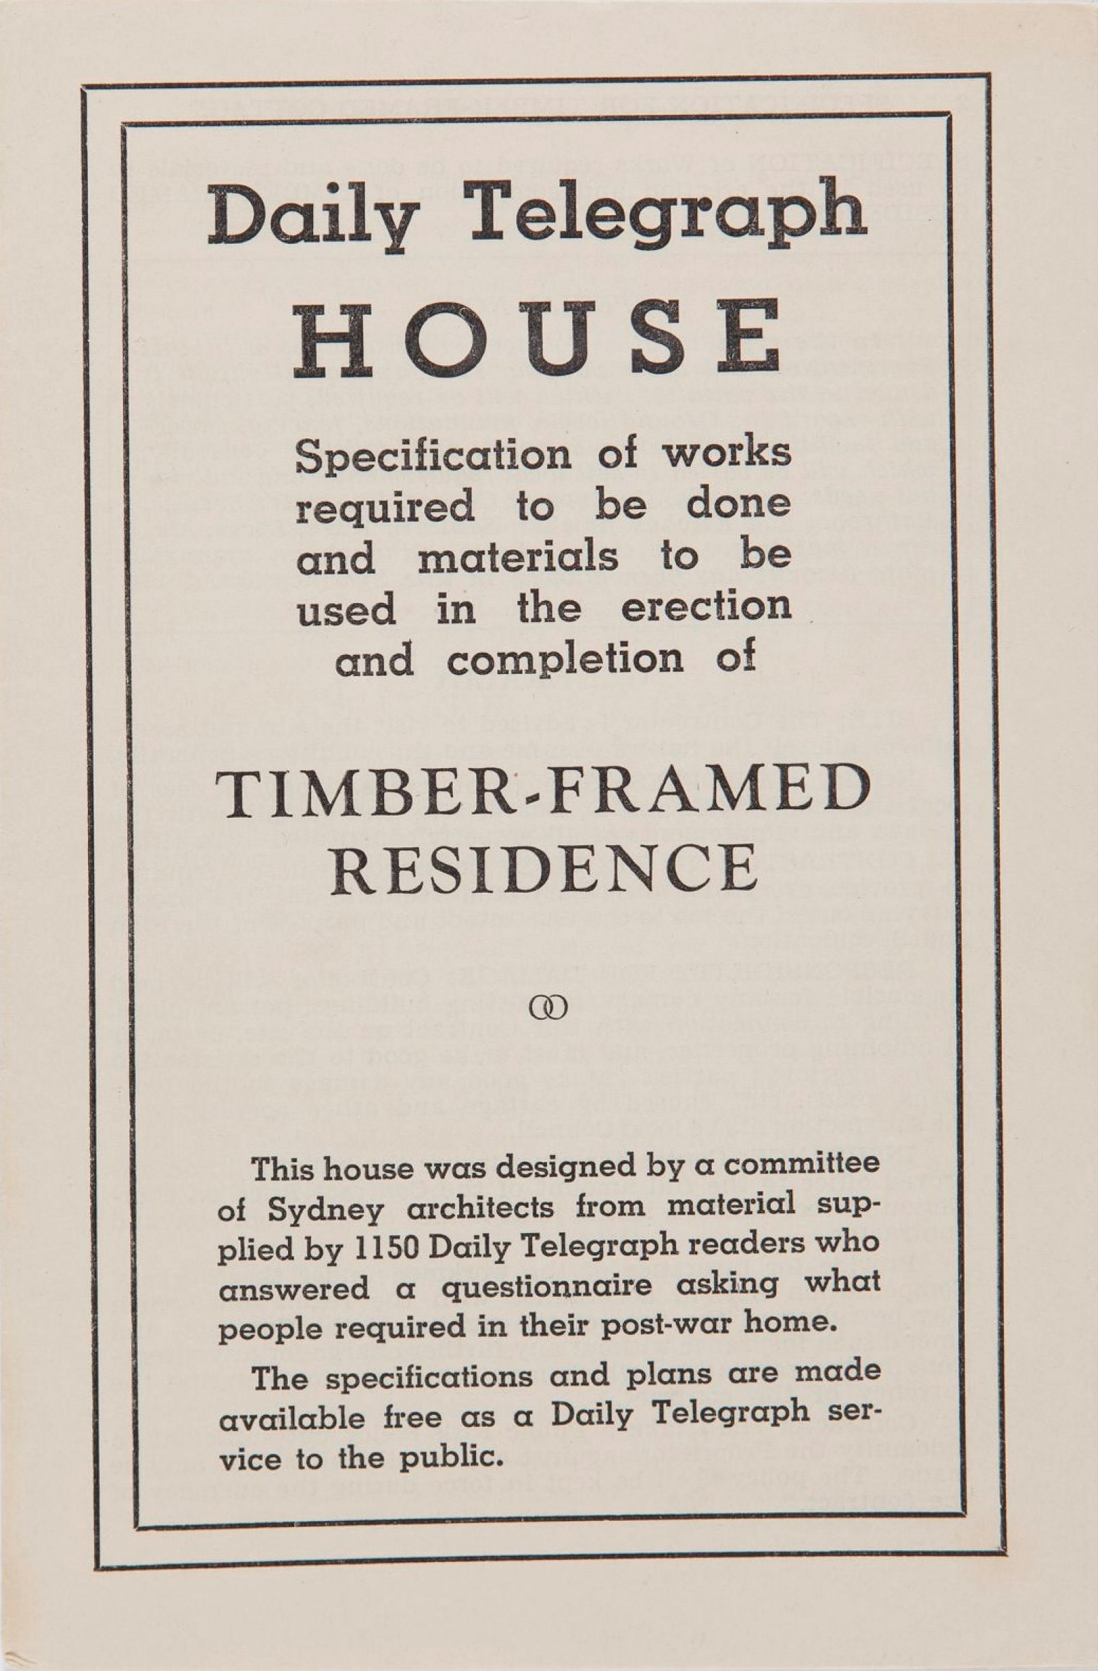 Cover of specification booklet for Daily Telegraph house; Timber-framed residence, 1945